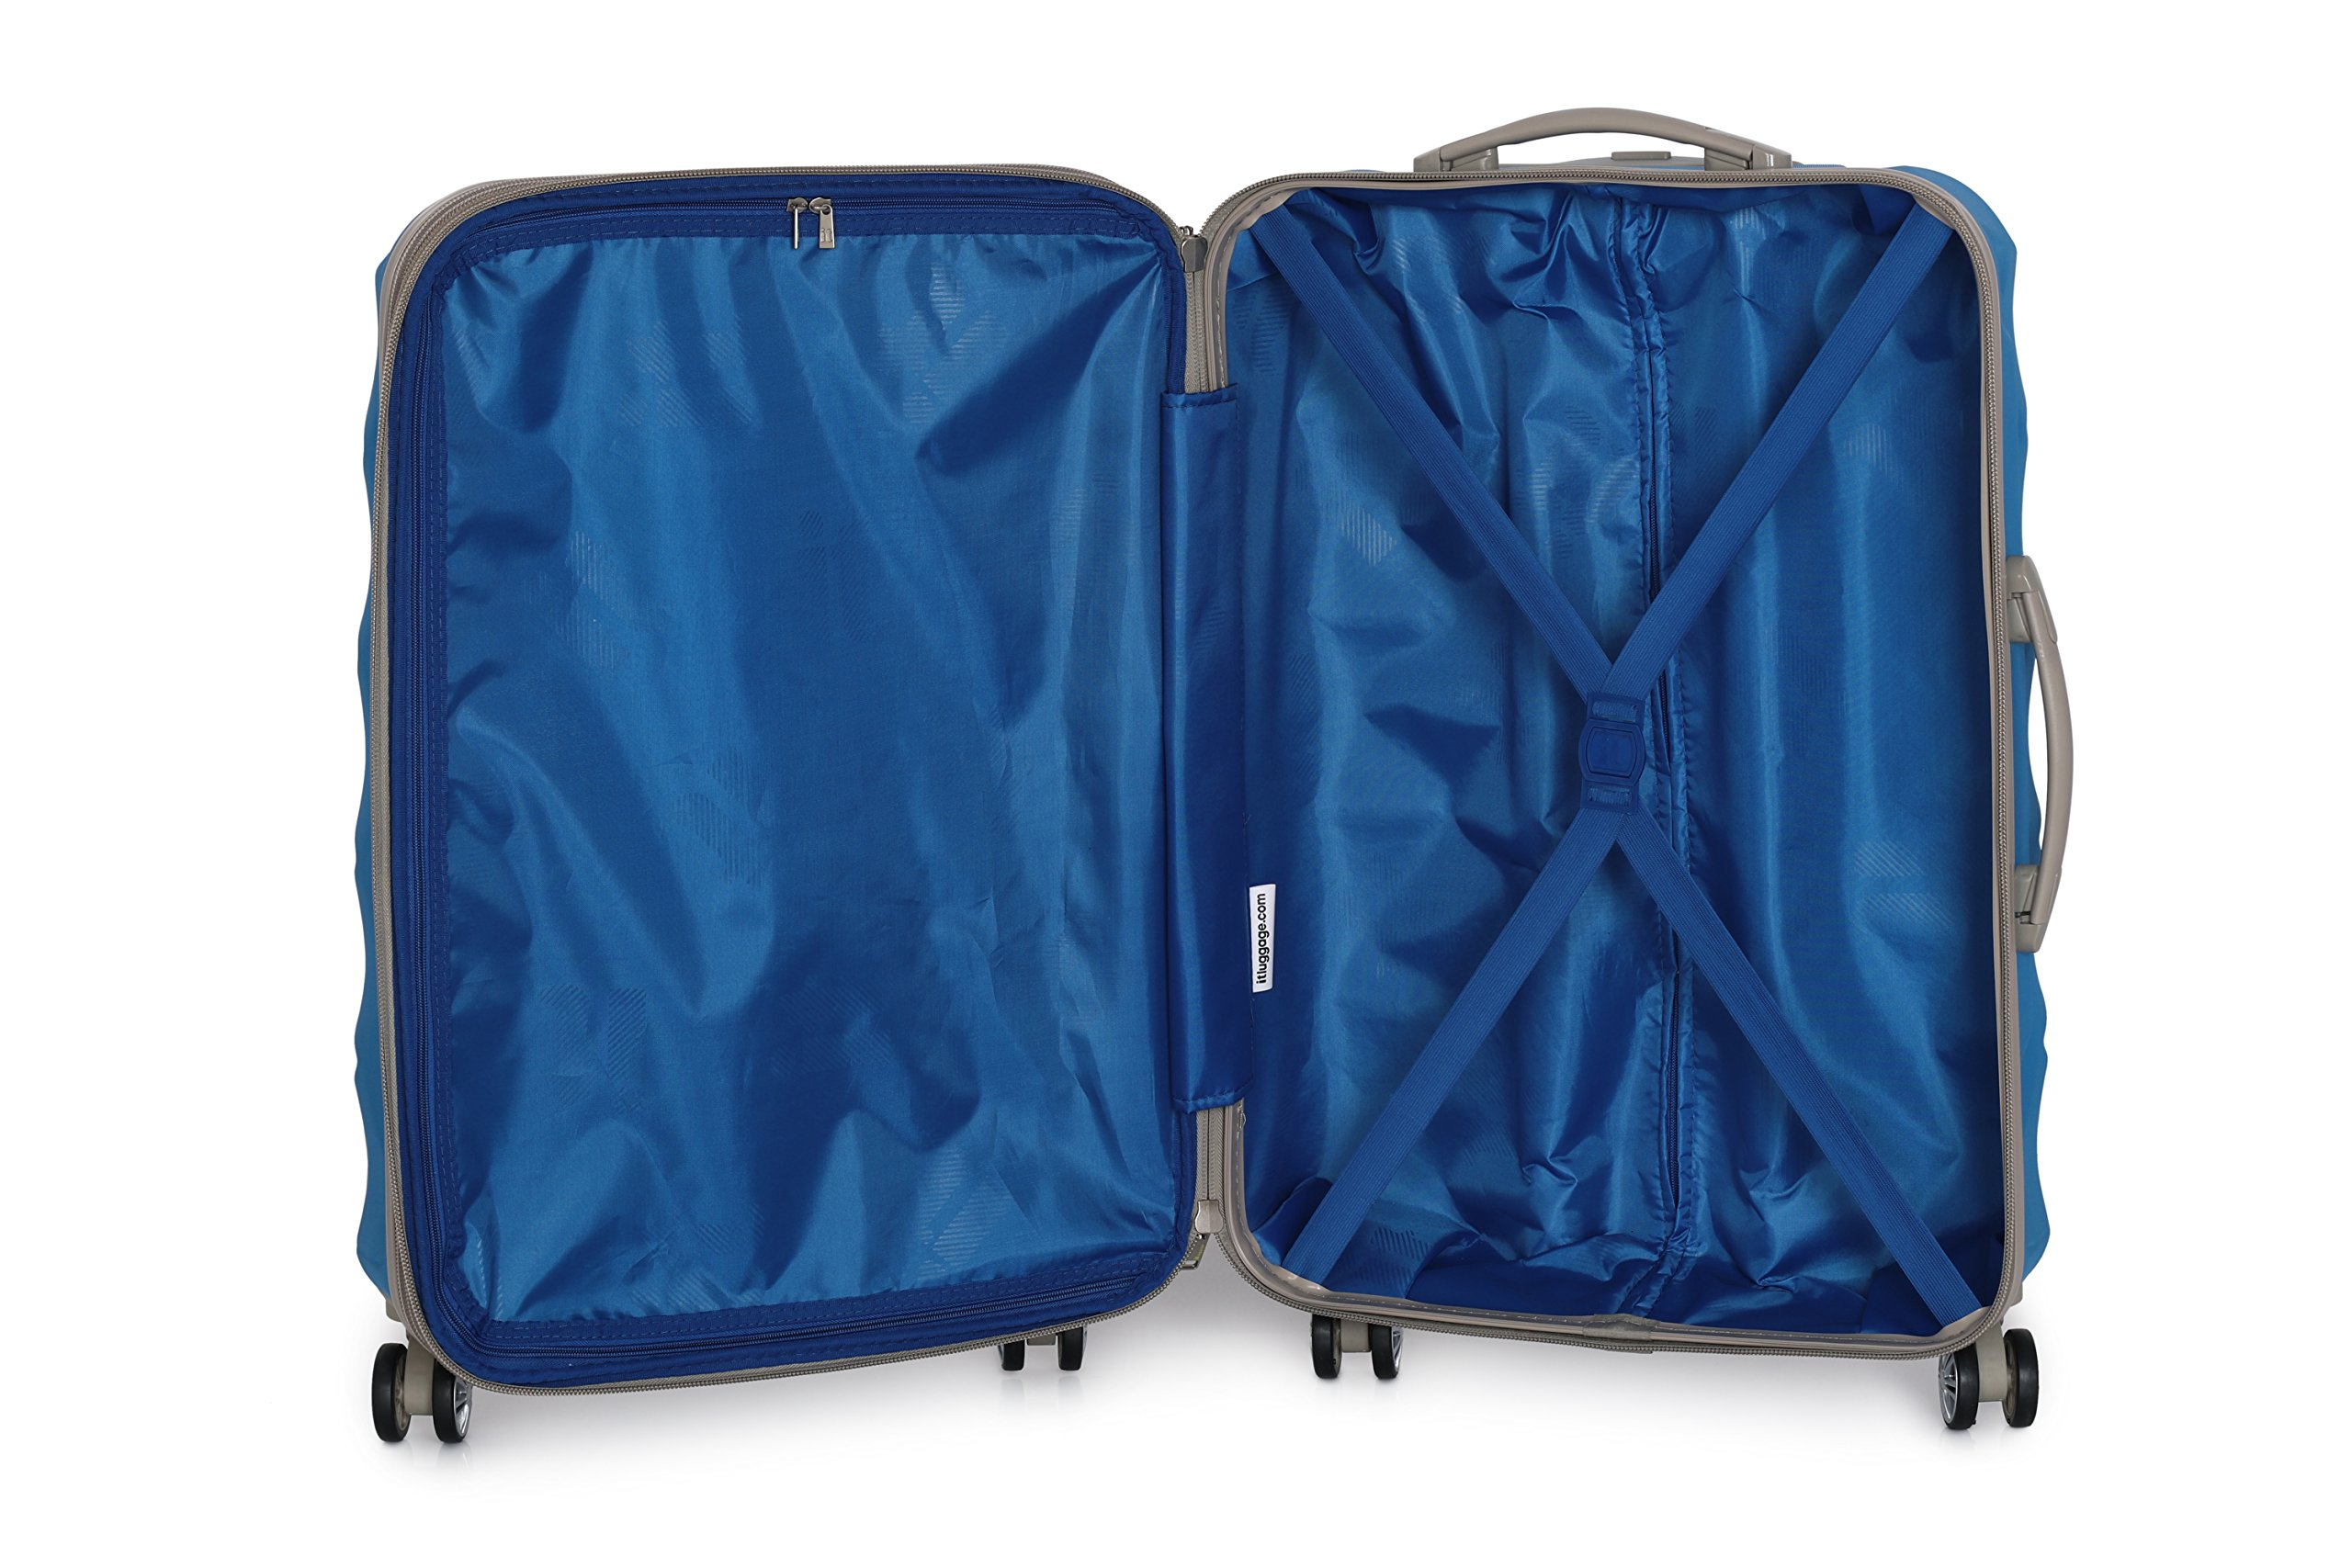 59591ecce351 it luggage 3 Piece Set of Debossed Diamond 8 Wheel Hard Shell Single  Expander Suitcases with